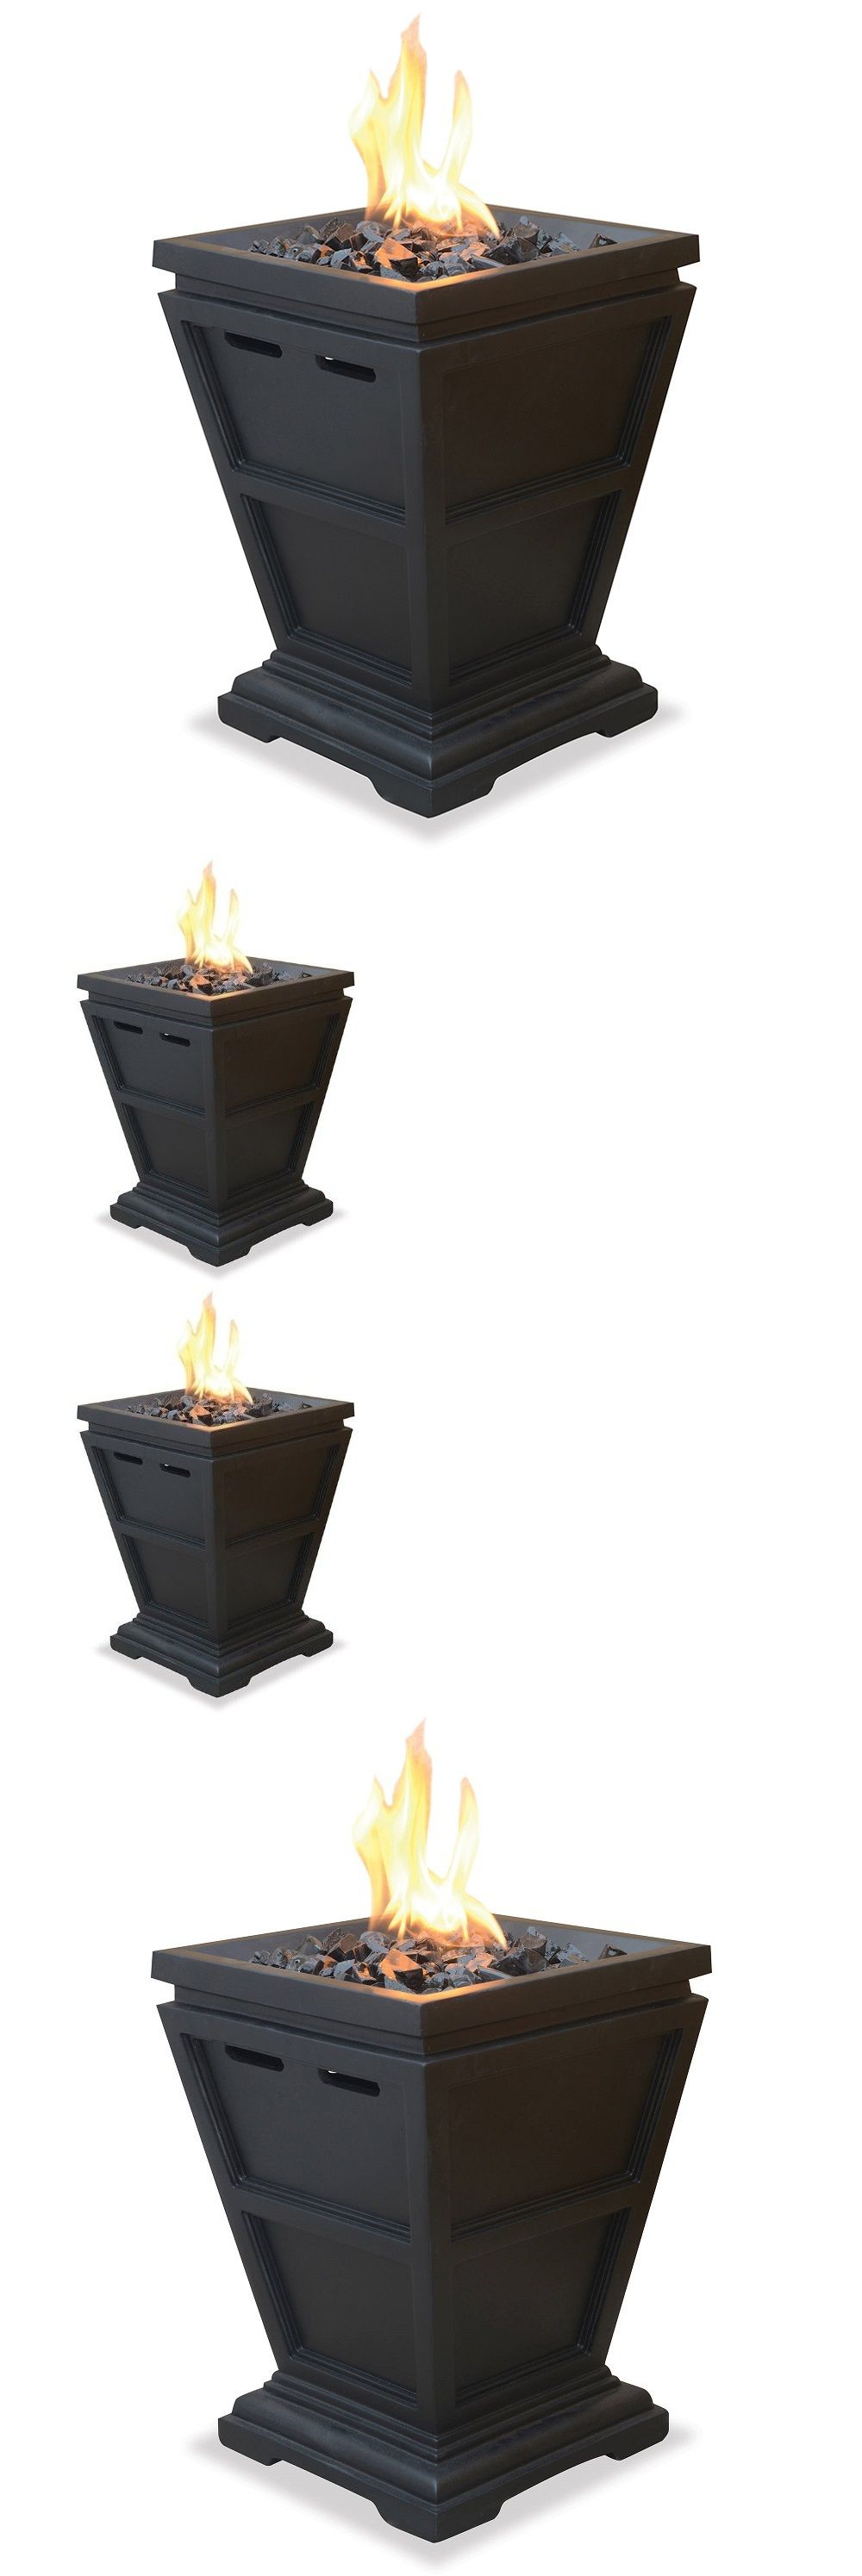 Patio heaters fire table small gas fireplace standing column